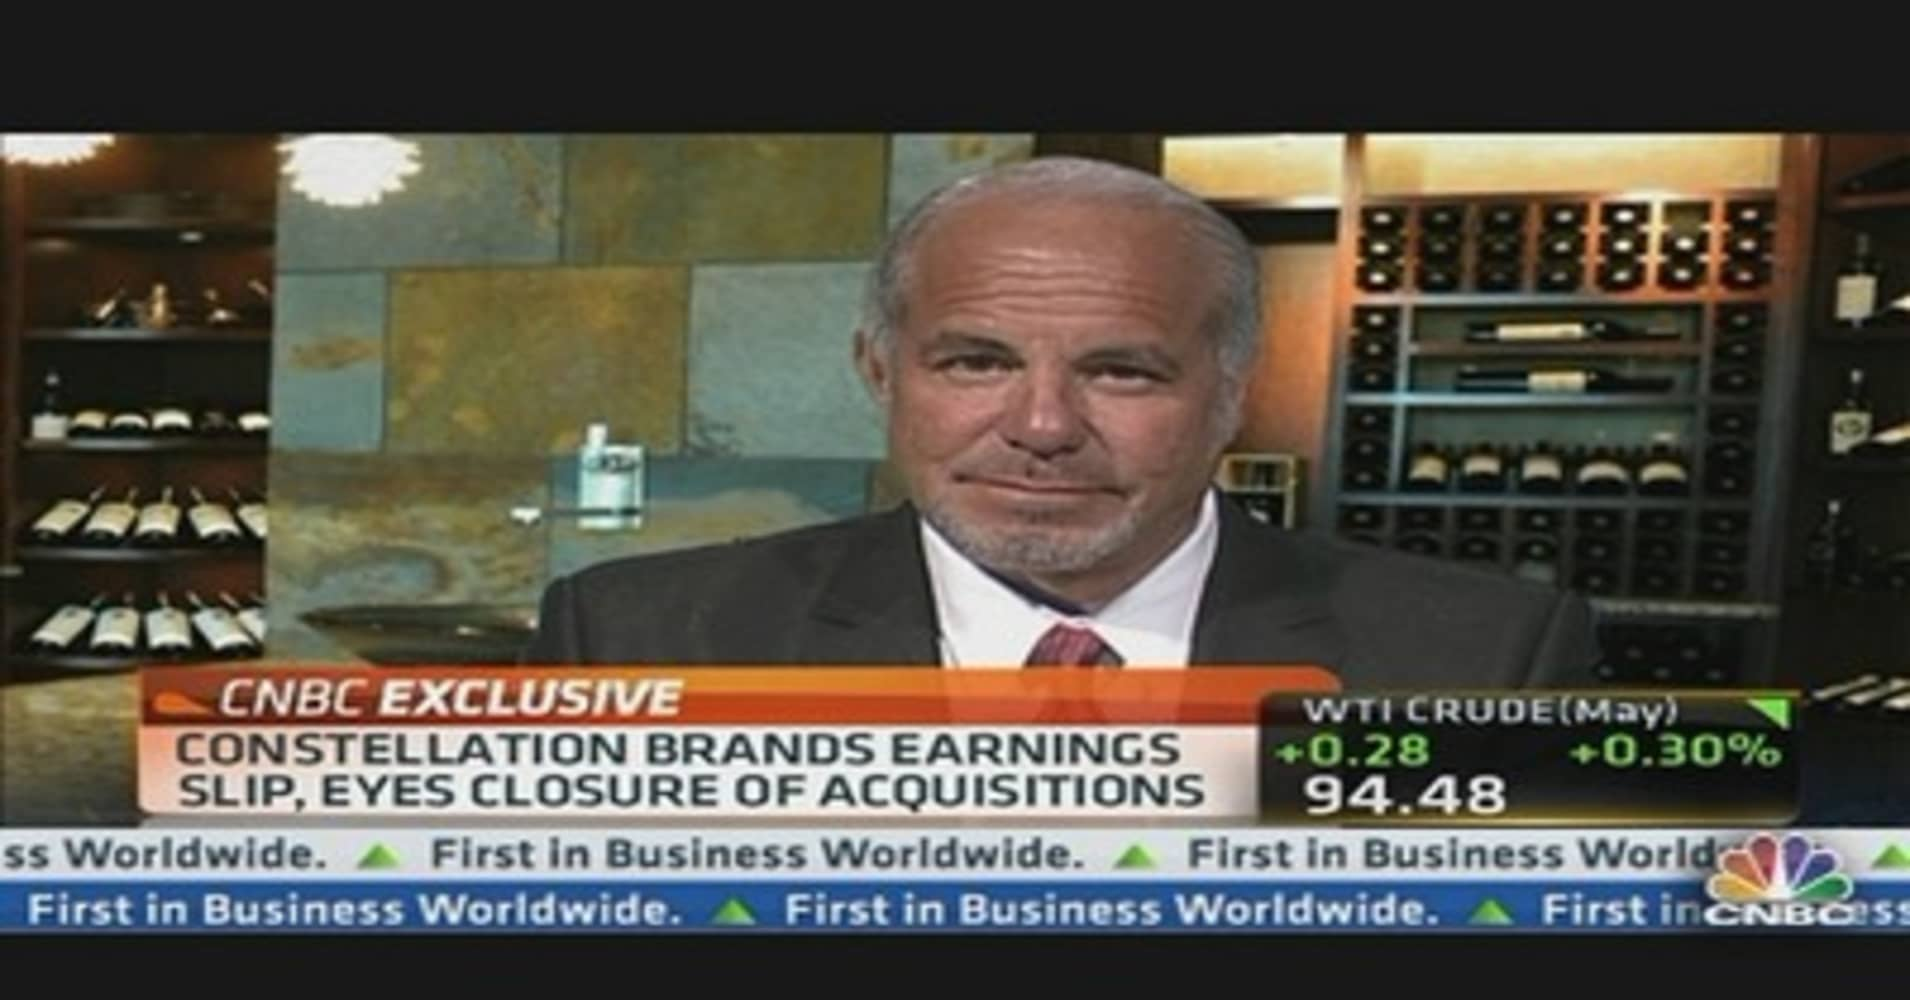 Constellation Brands CEO: Robust Sales Growth